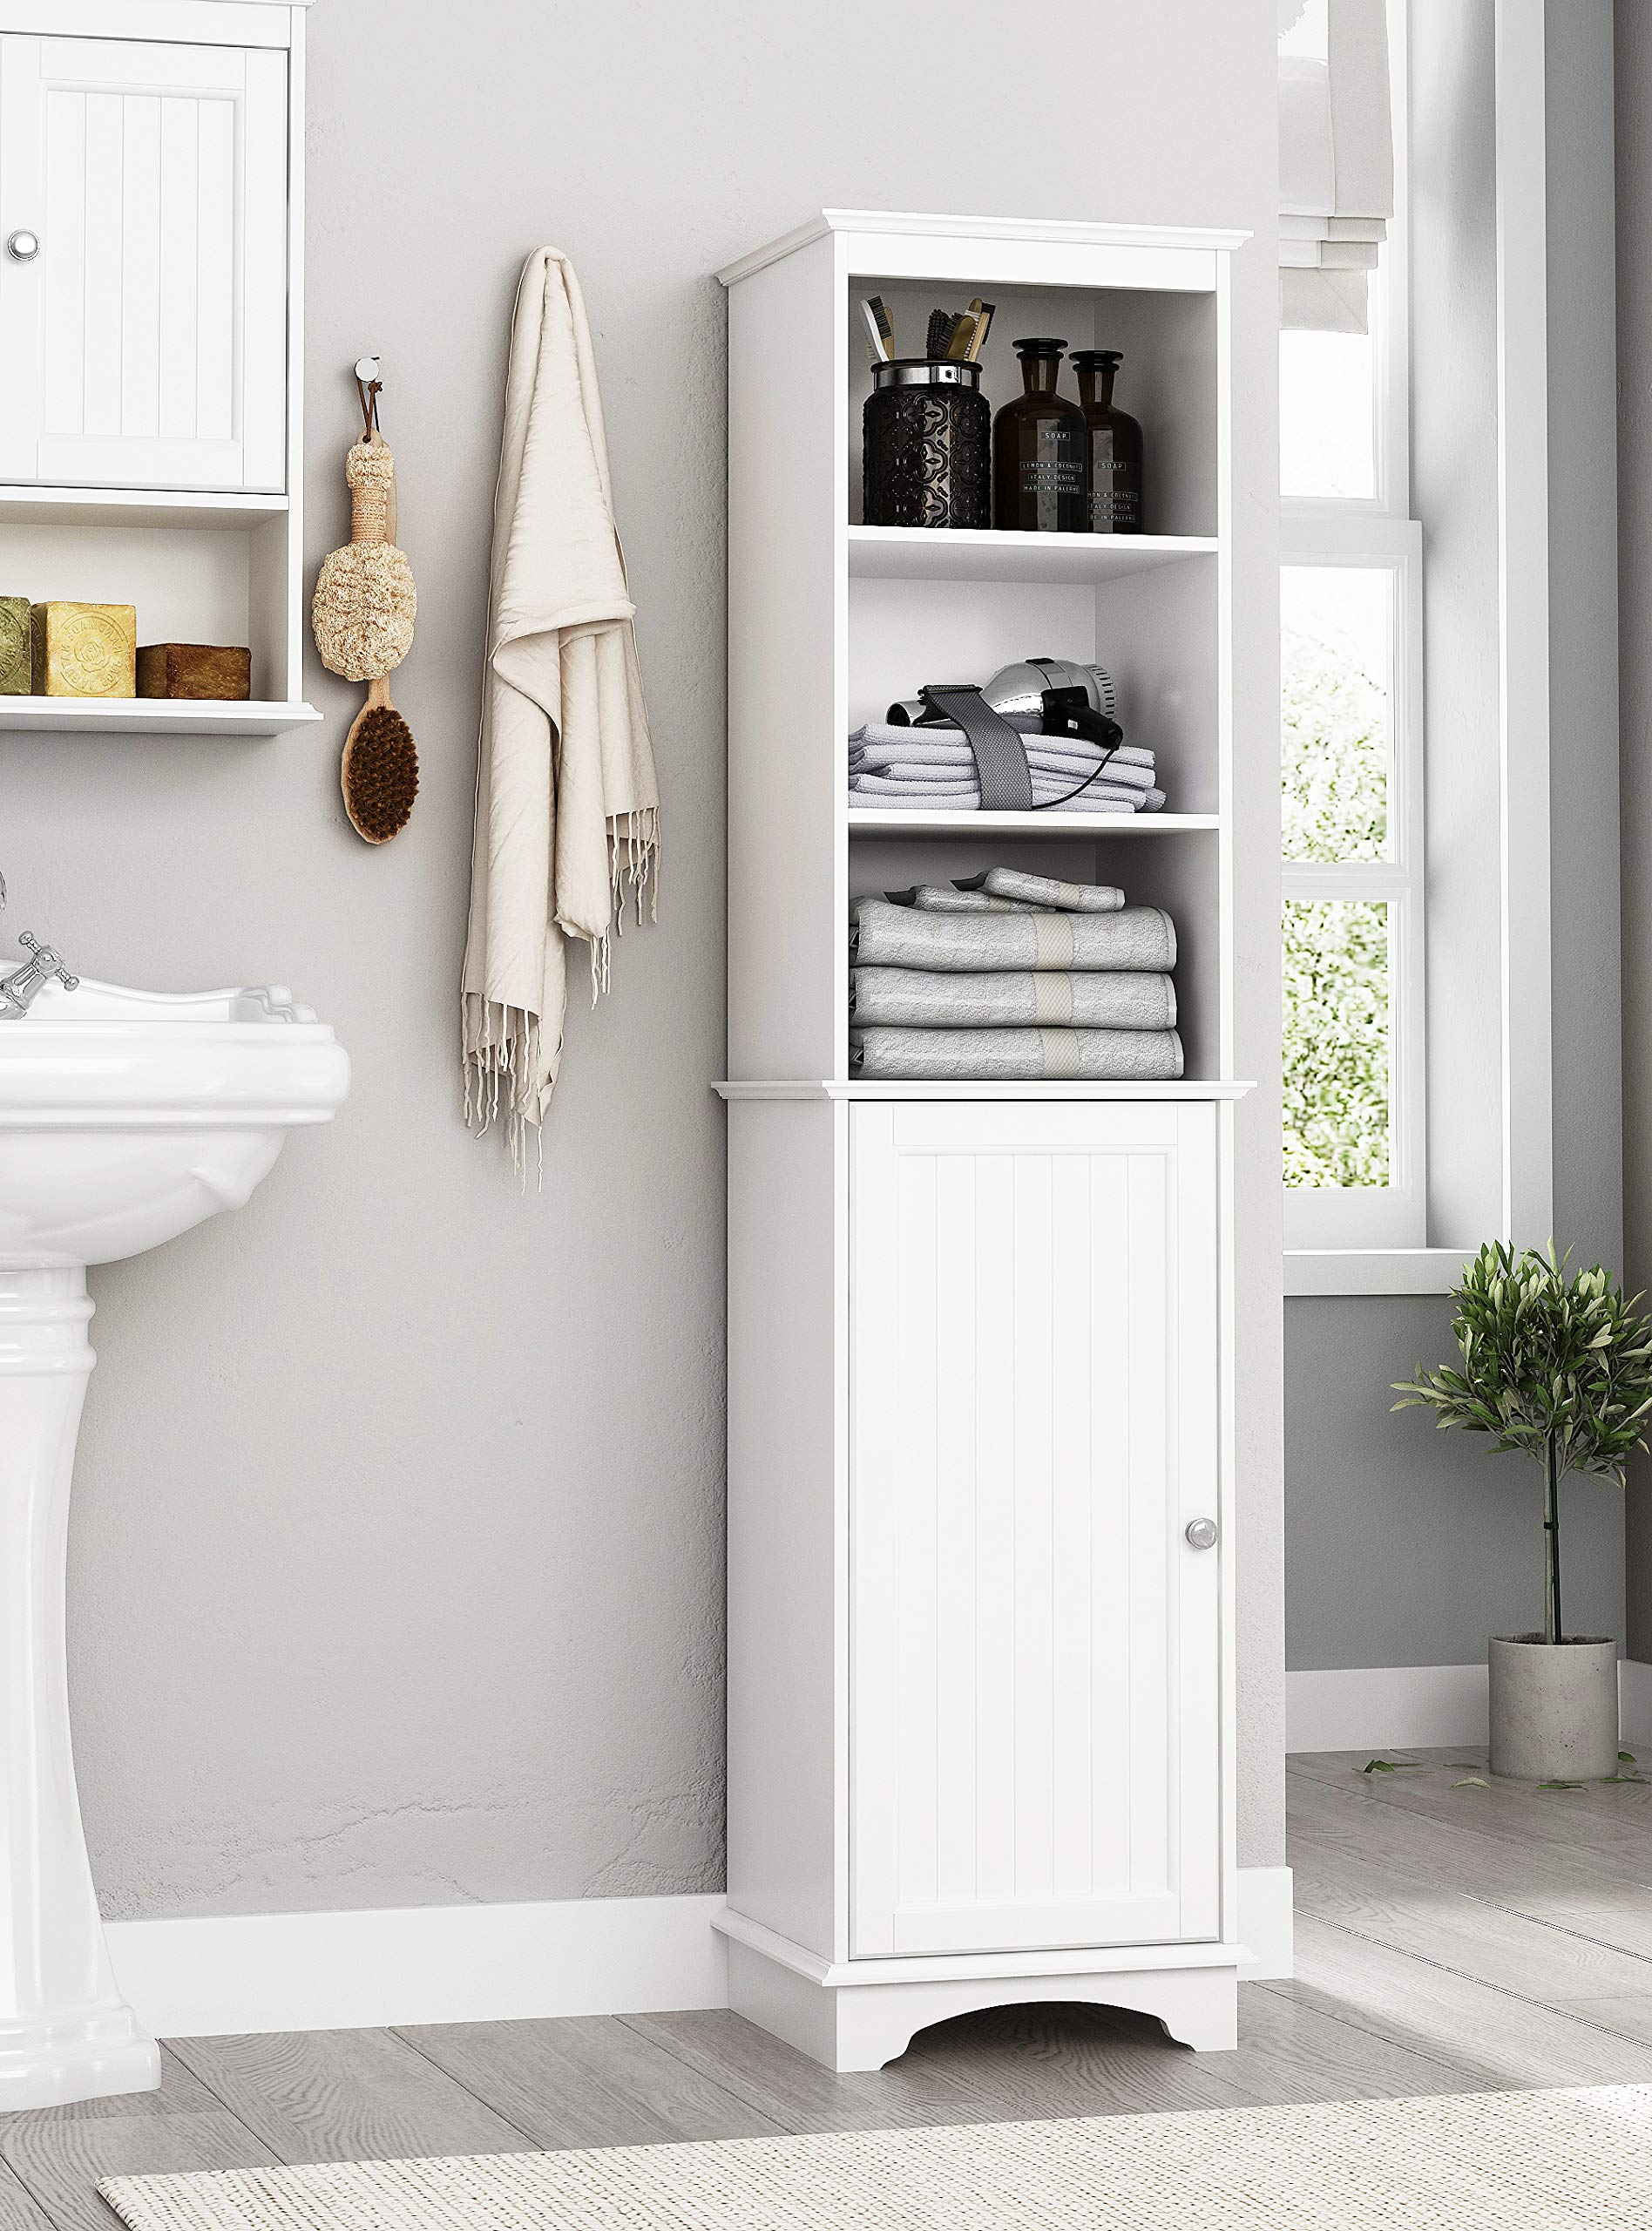 Spirich Home Freestanding Storage Cabinet with Three Tier Shelves, Tall Slim Cabinet, Free Standing Linen Tower, White Finish